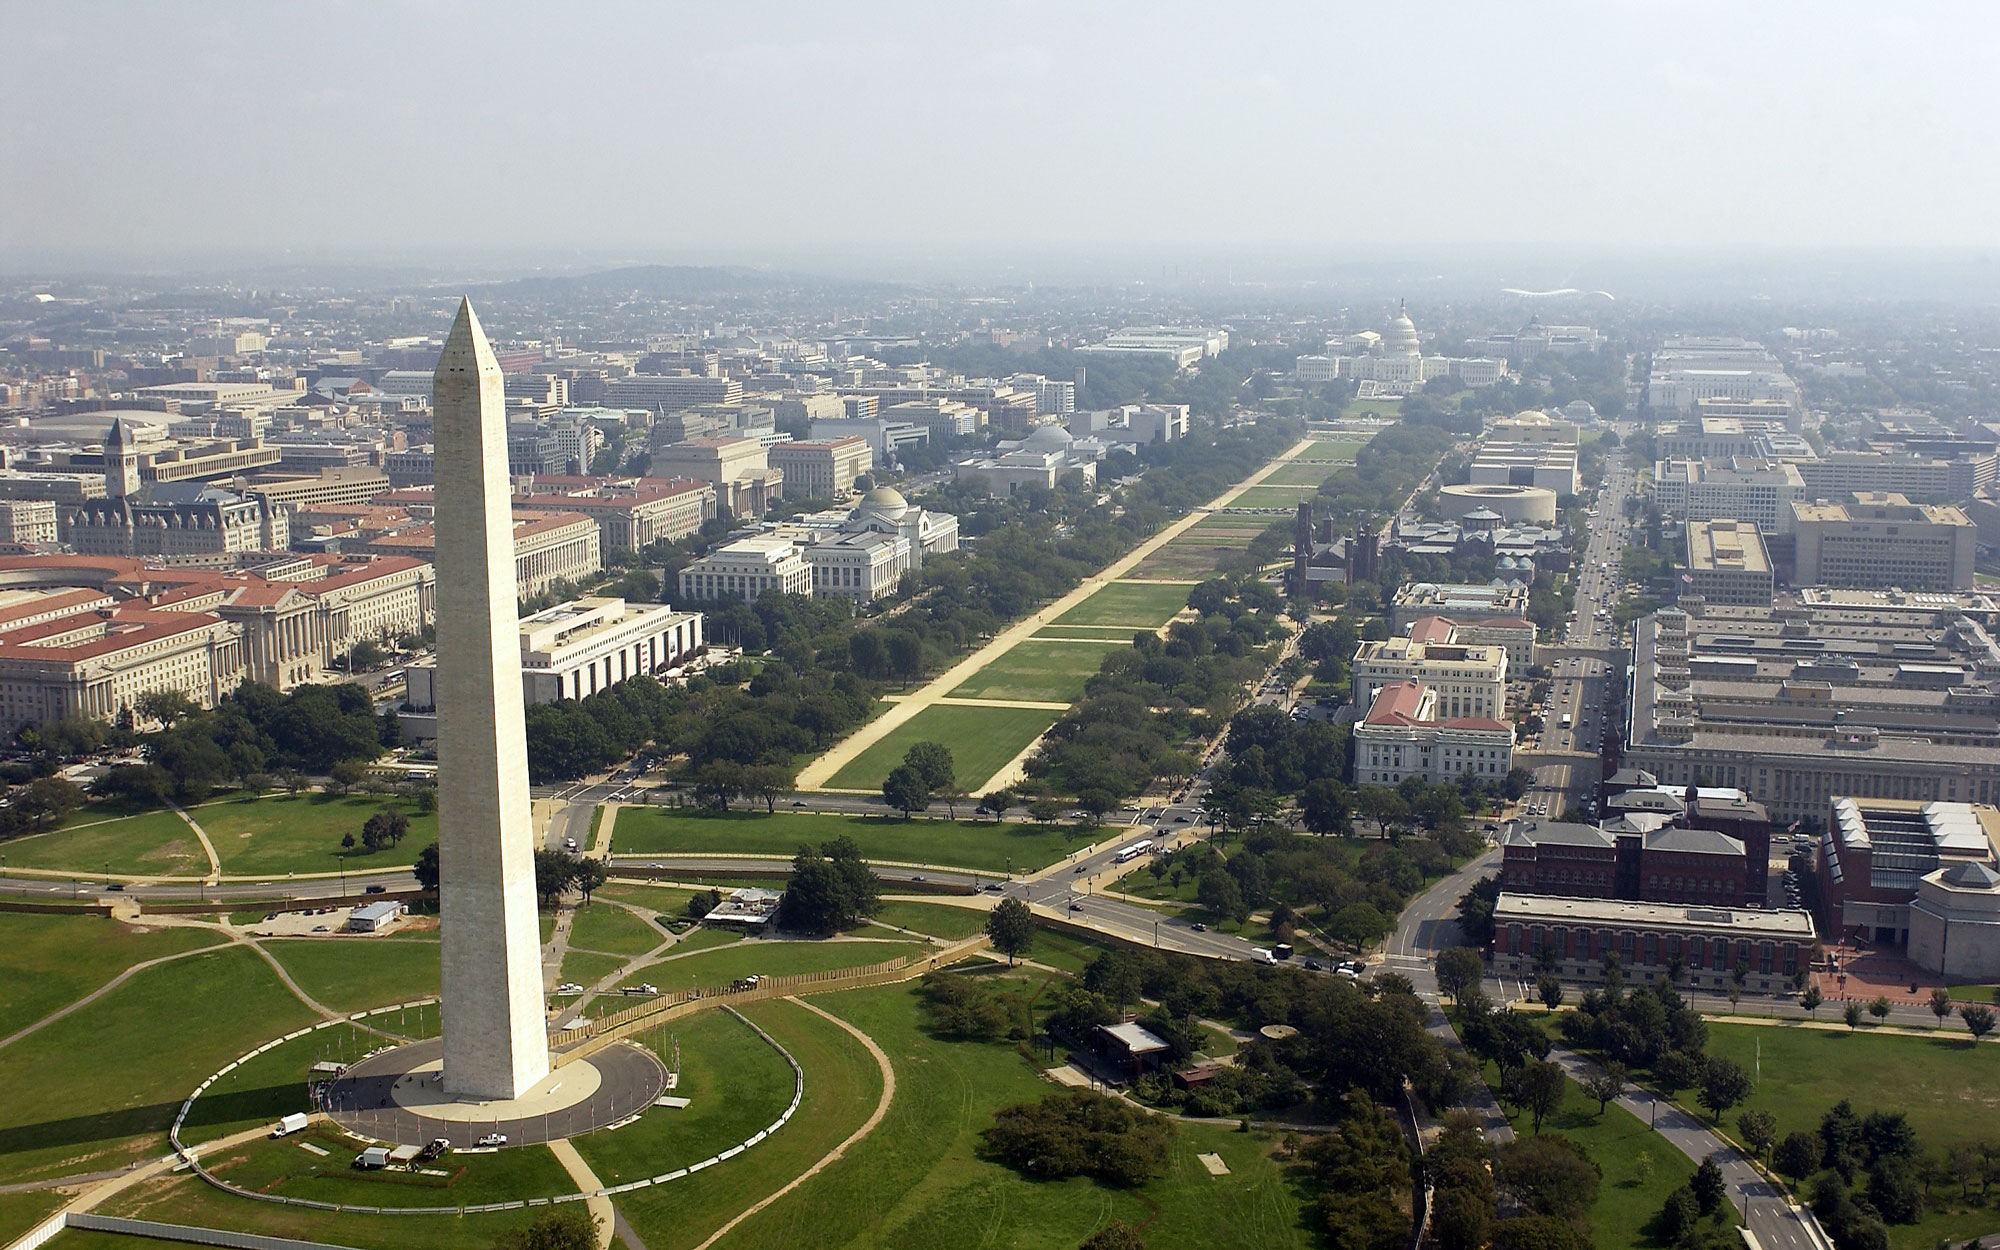 District of Columbia from Washington Monument